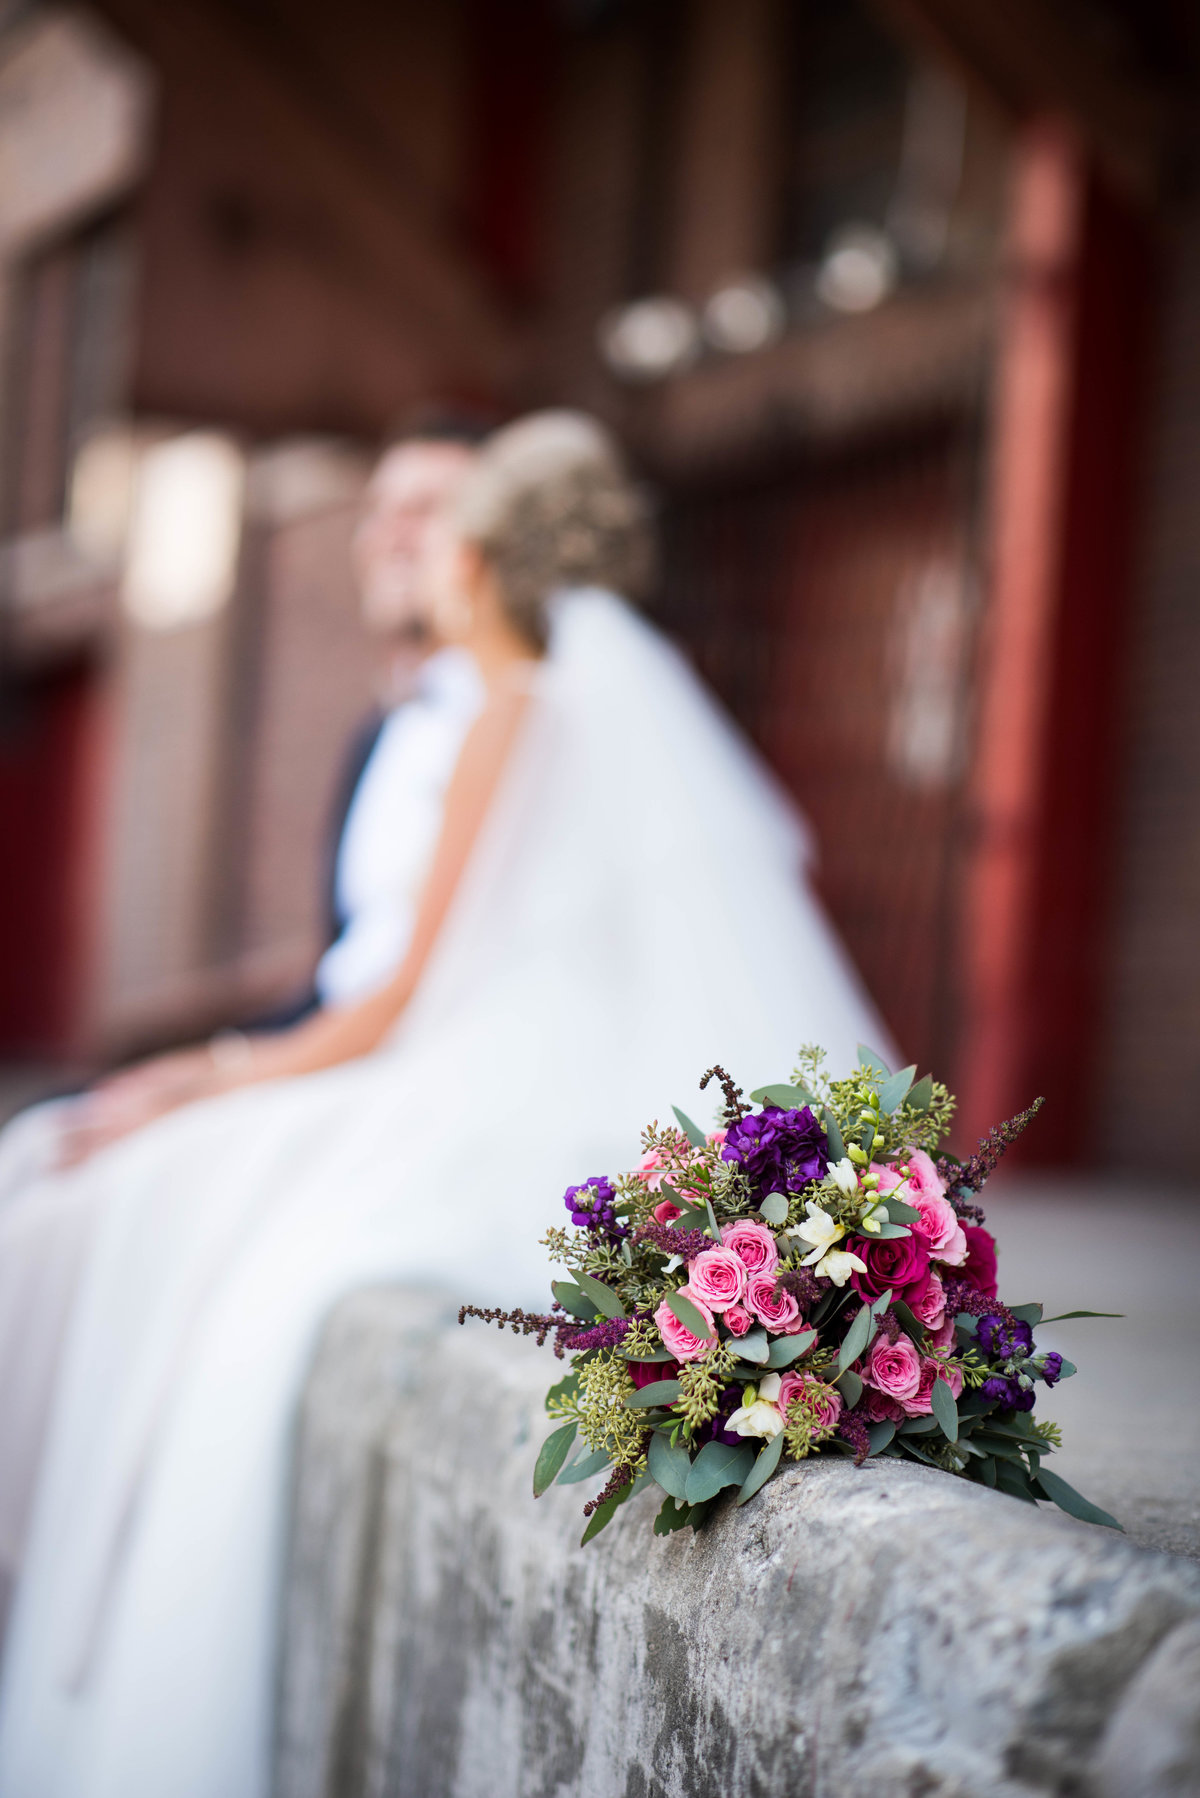 Wedding bouquet, couple in background, Chicago IL.